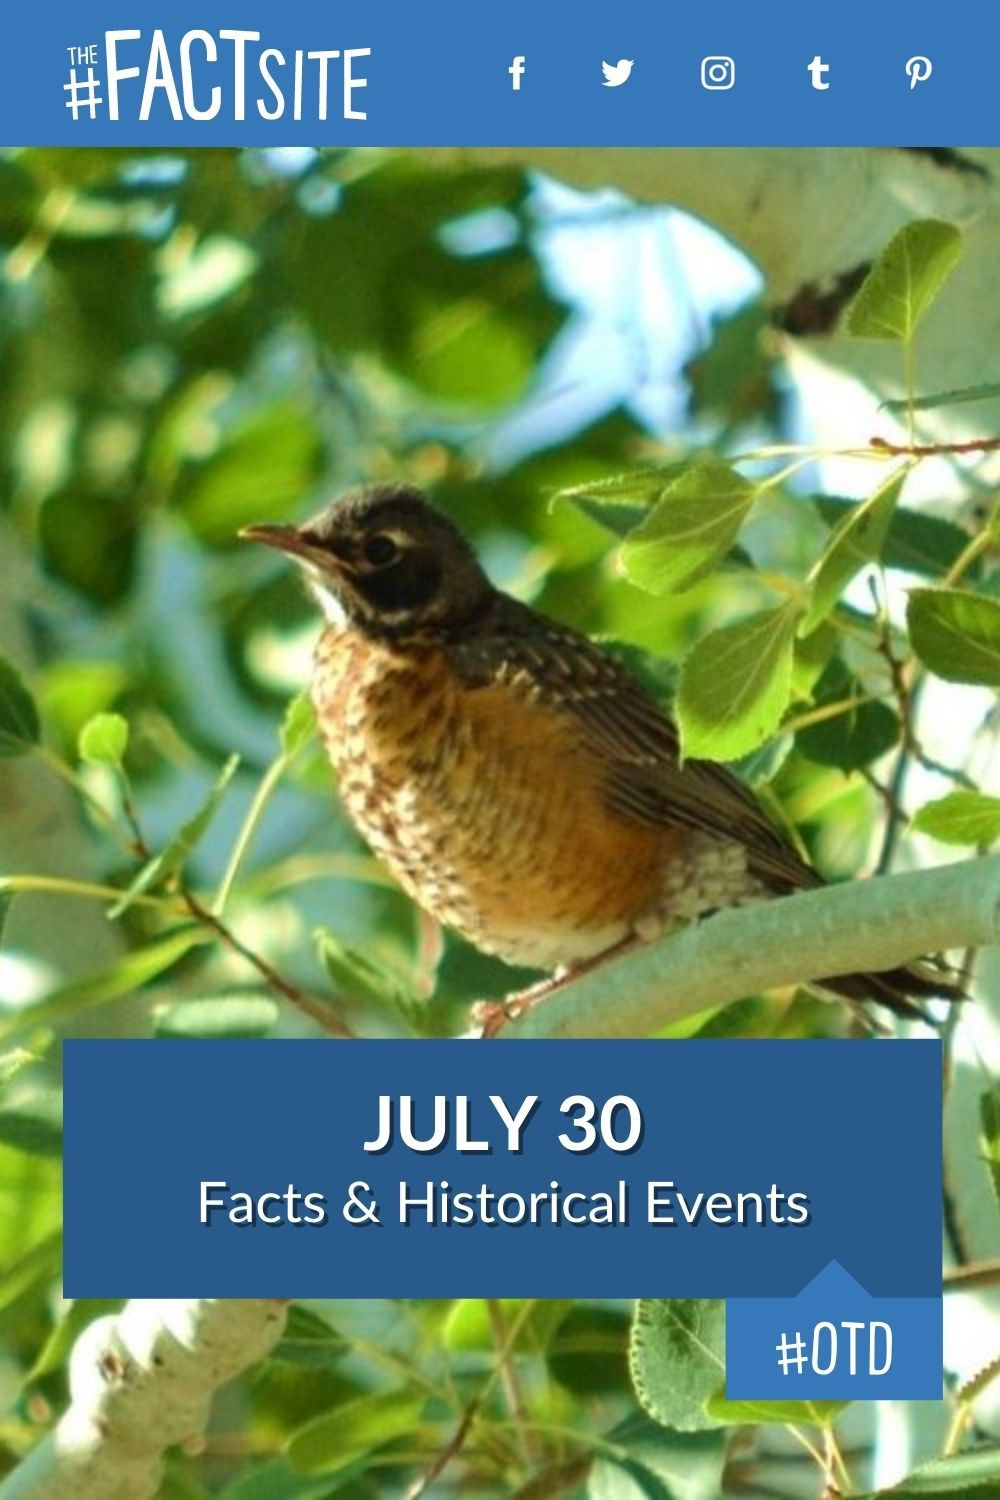 Facts & Historic Events That Happened on July 30